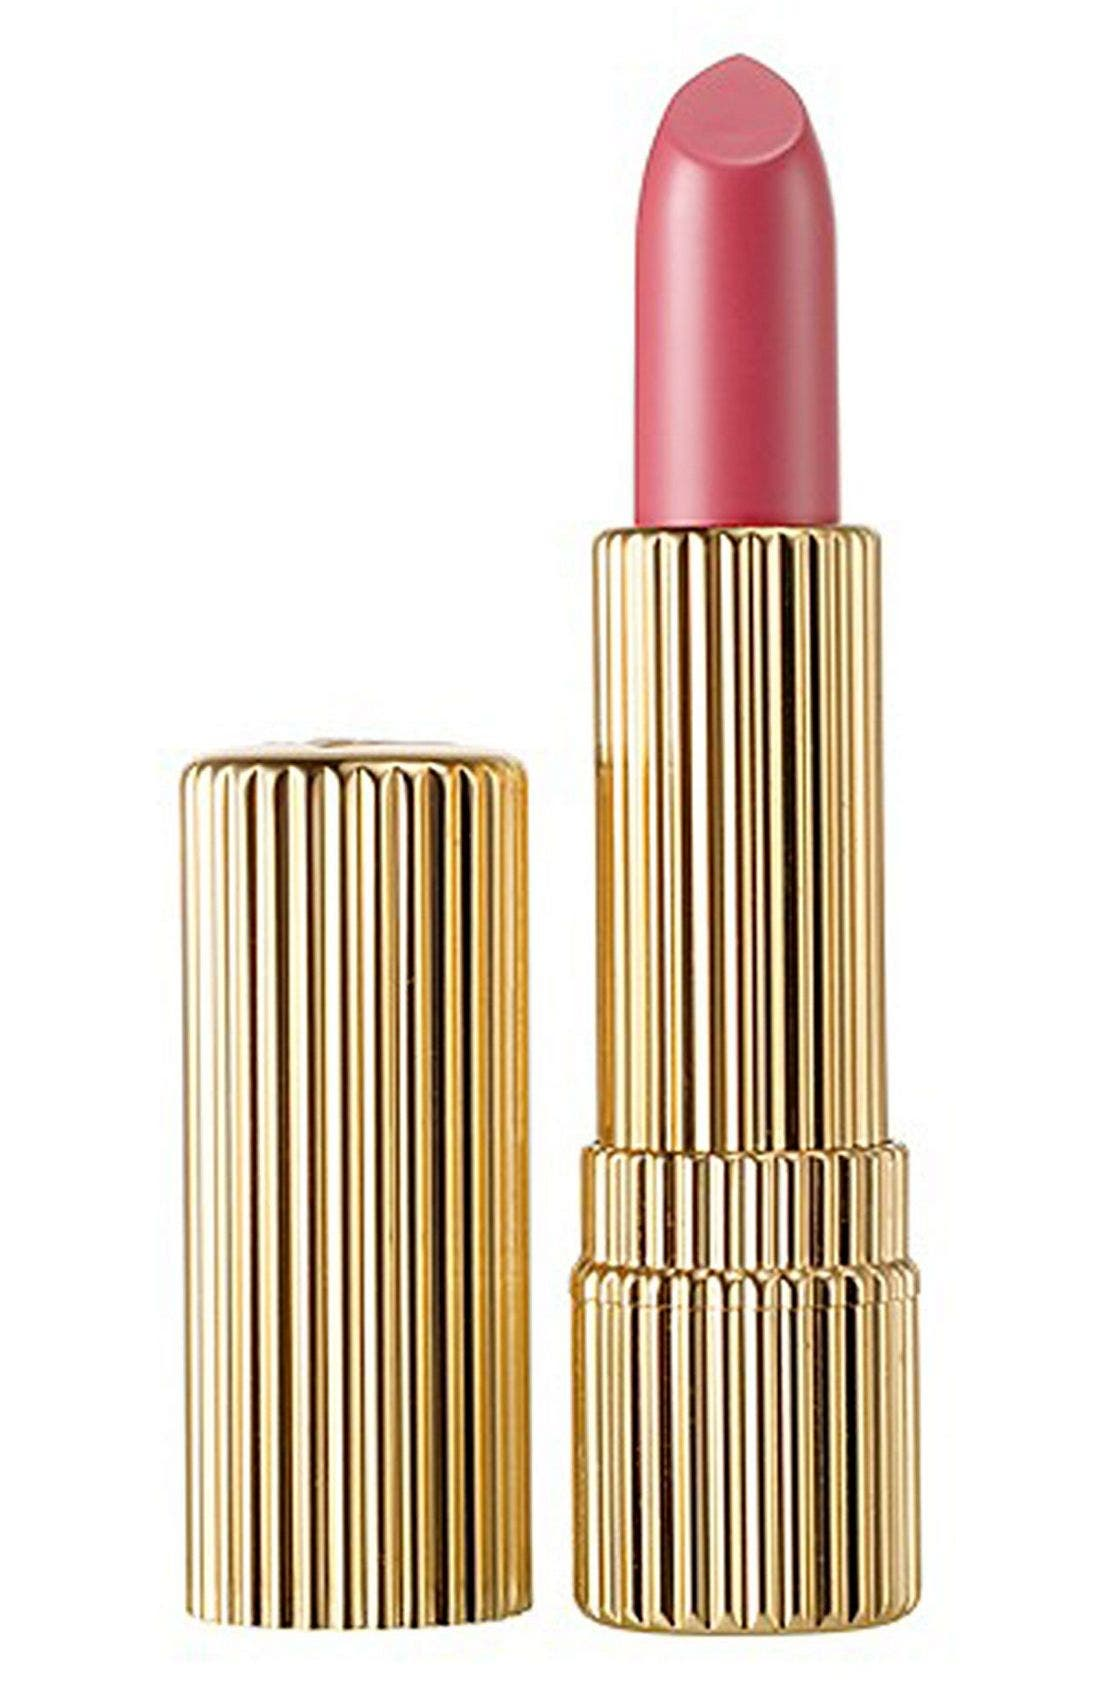 All Day Lipstick,                             Main thumbnail 1, color,                             STARLIT PINK